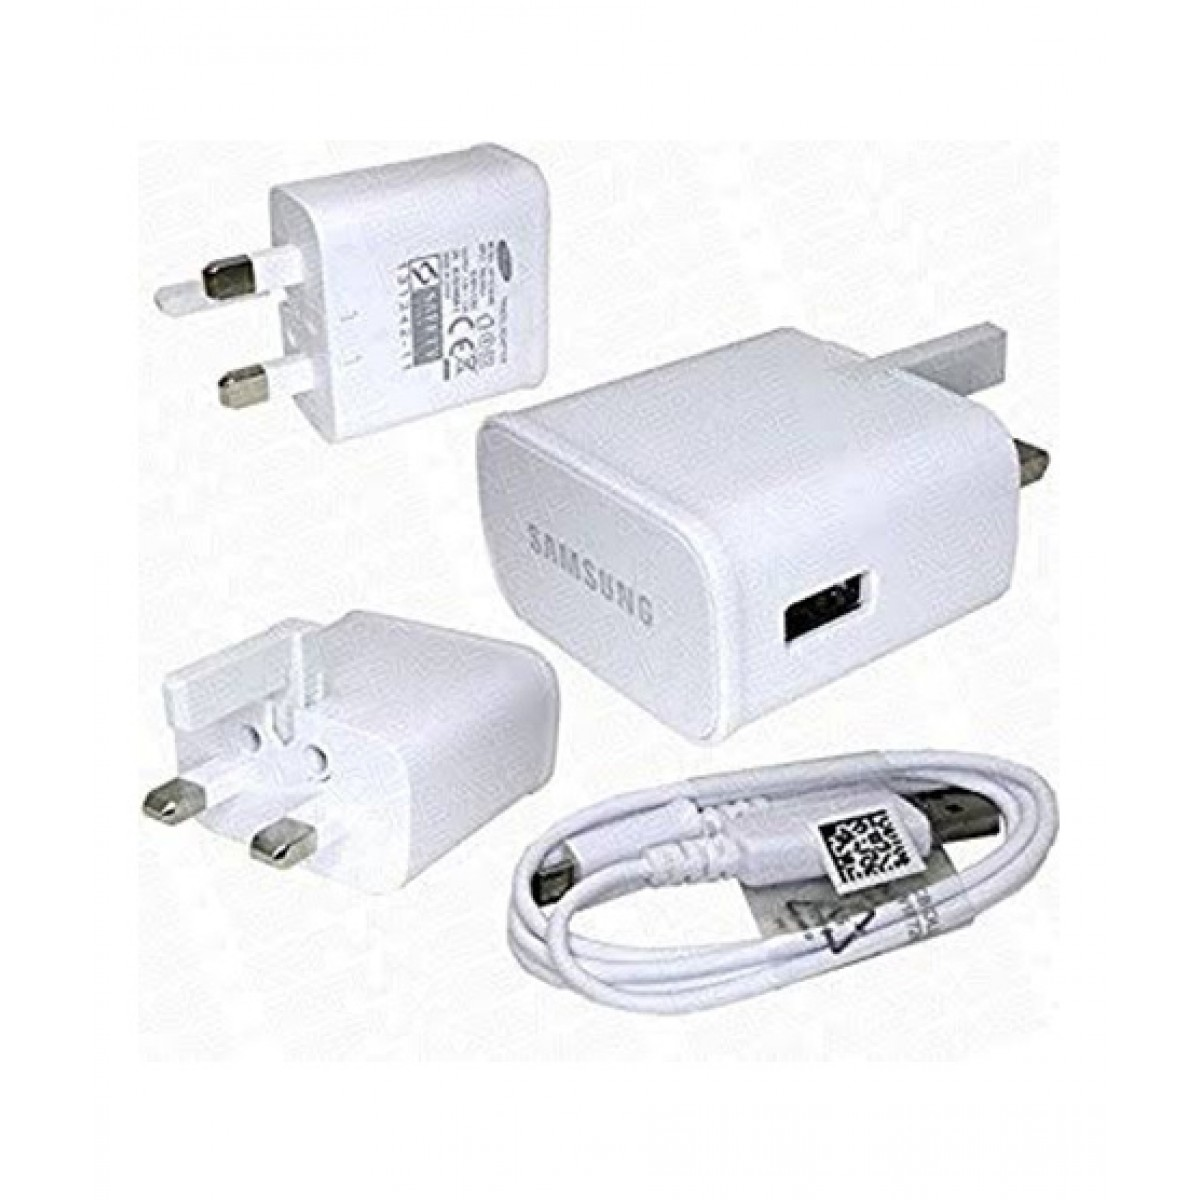 Samsung Fast Charger With Cable White